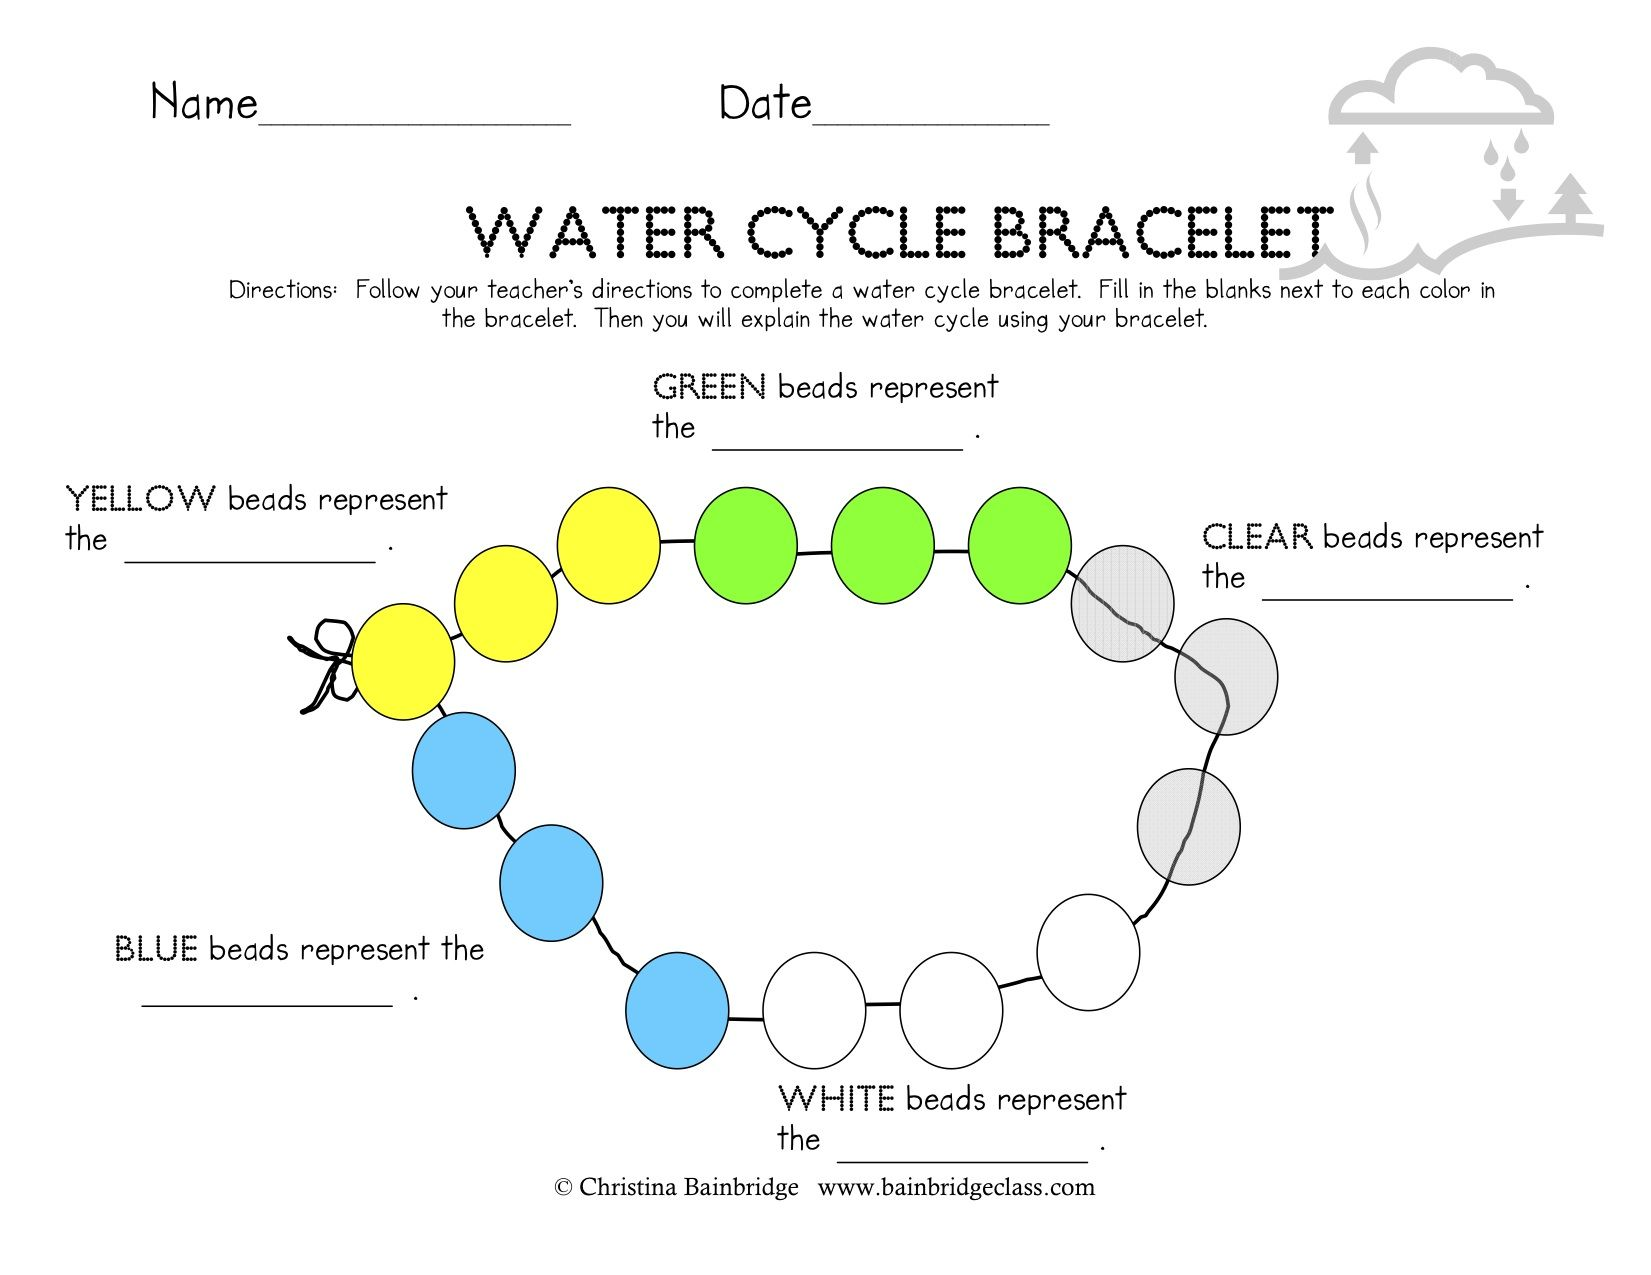 water cycle bracelets science water cycle teaching activities earth day crafts. Black Bedroom Furniture Sets. Home Design Ideas